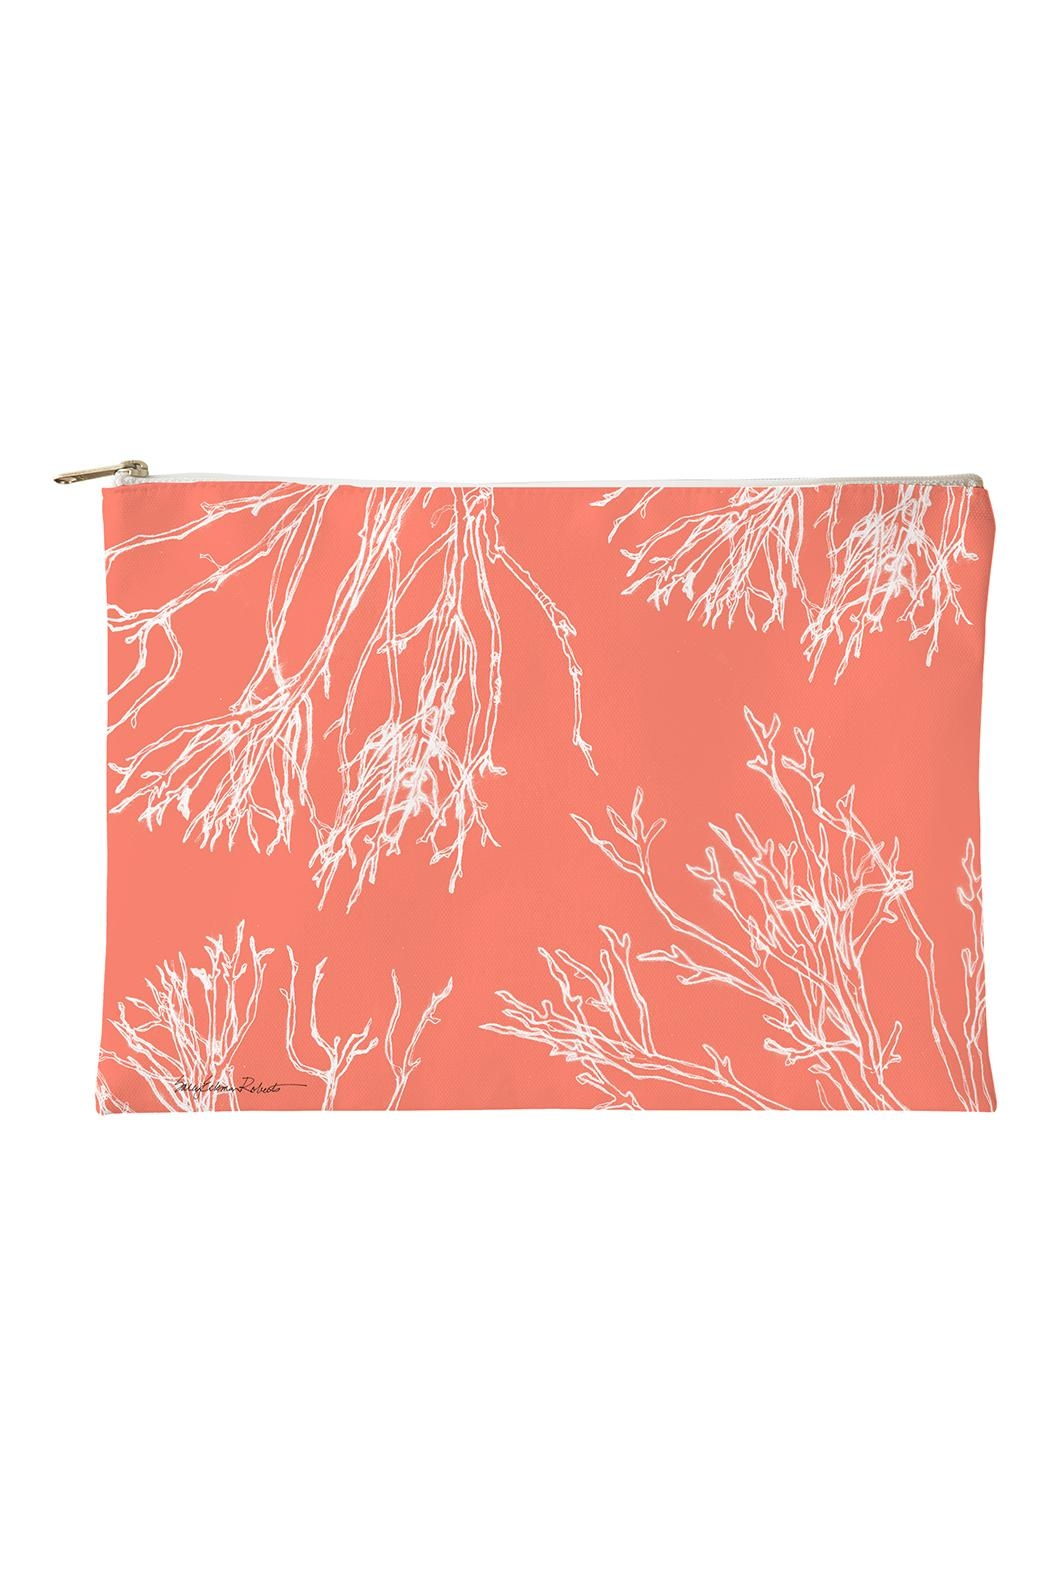 Sally Eckman Roberts Red-Coral Small Pouch - Main Image